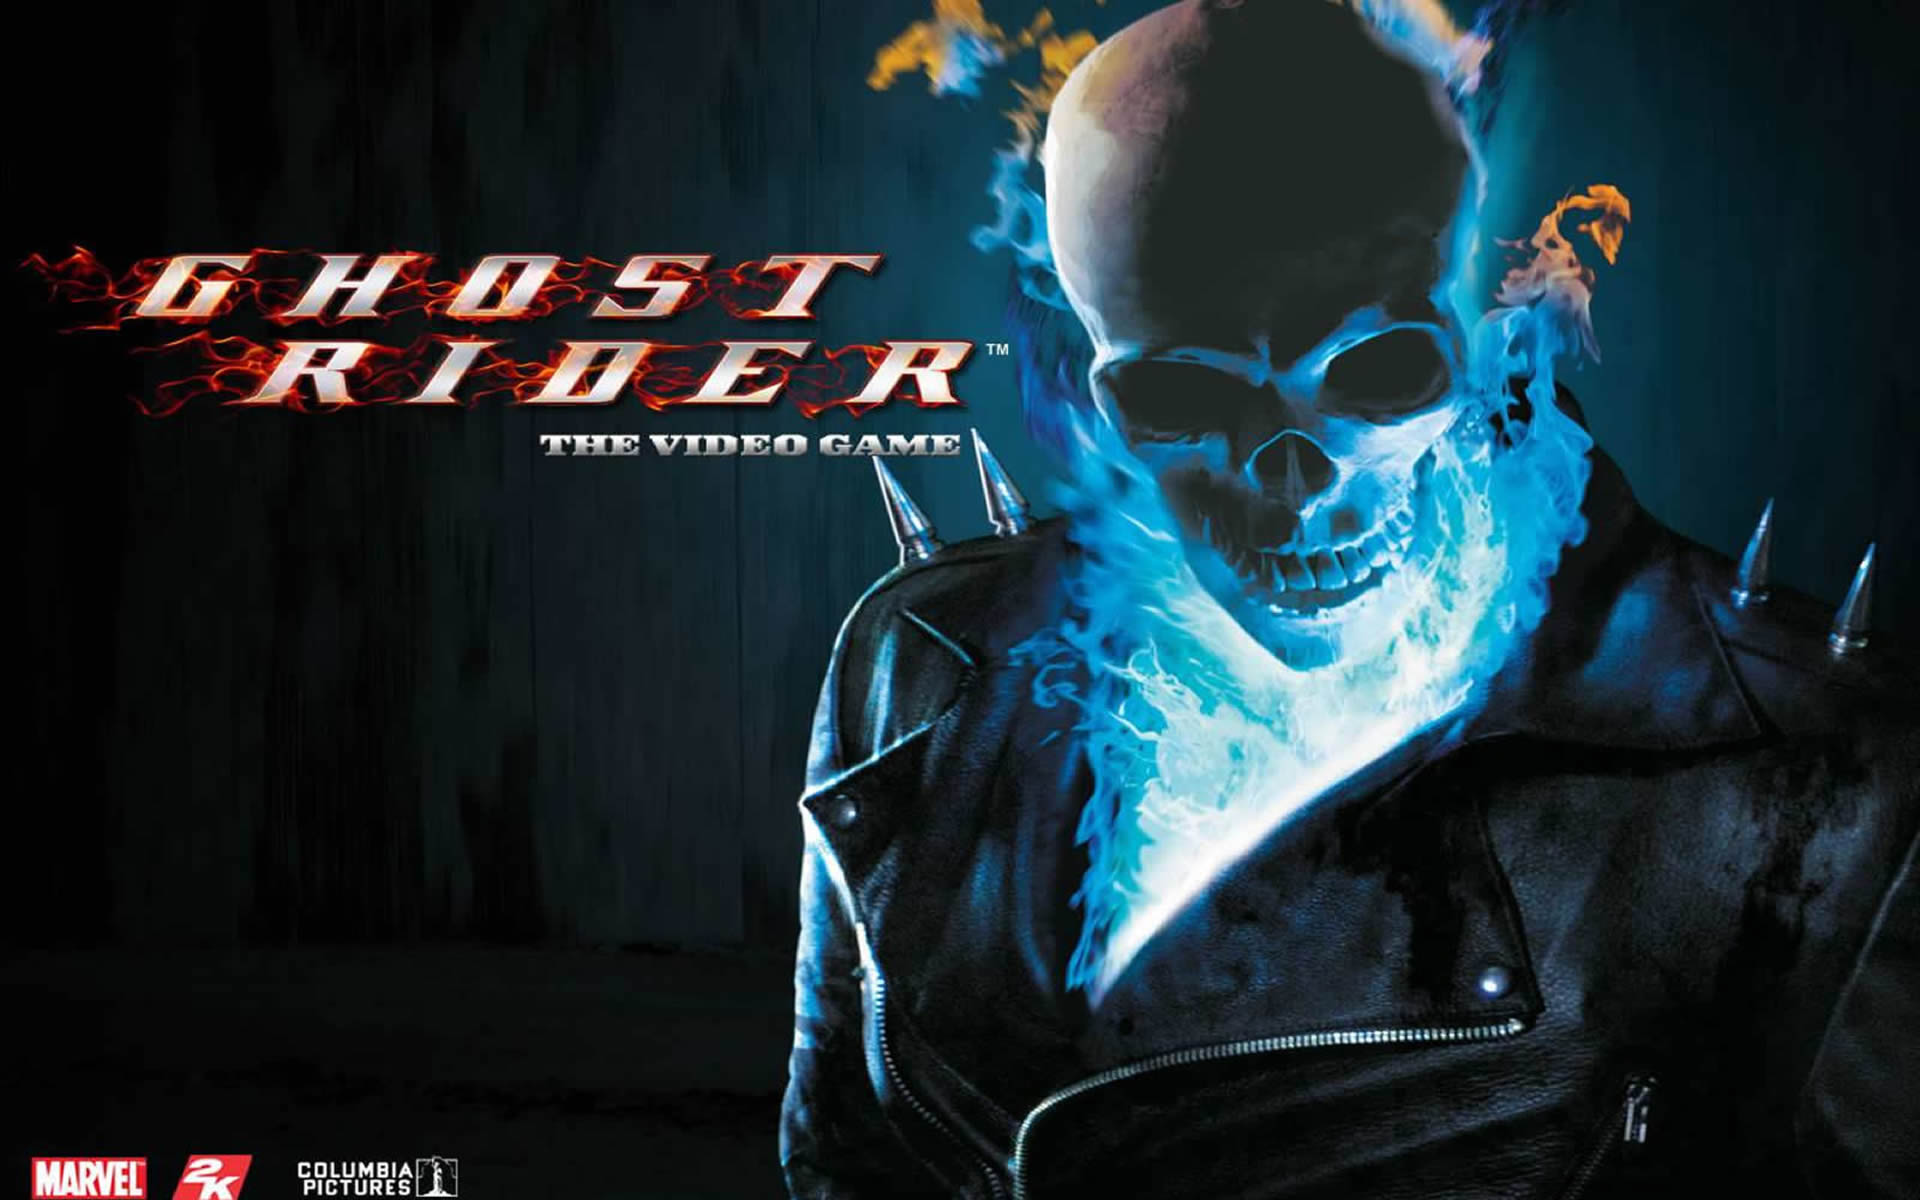 Blue Flame Skull Superhero Games Wallpaper Image Featuring Ghost 1920x1200